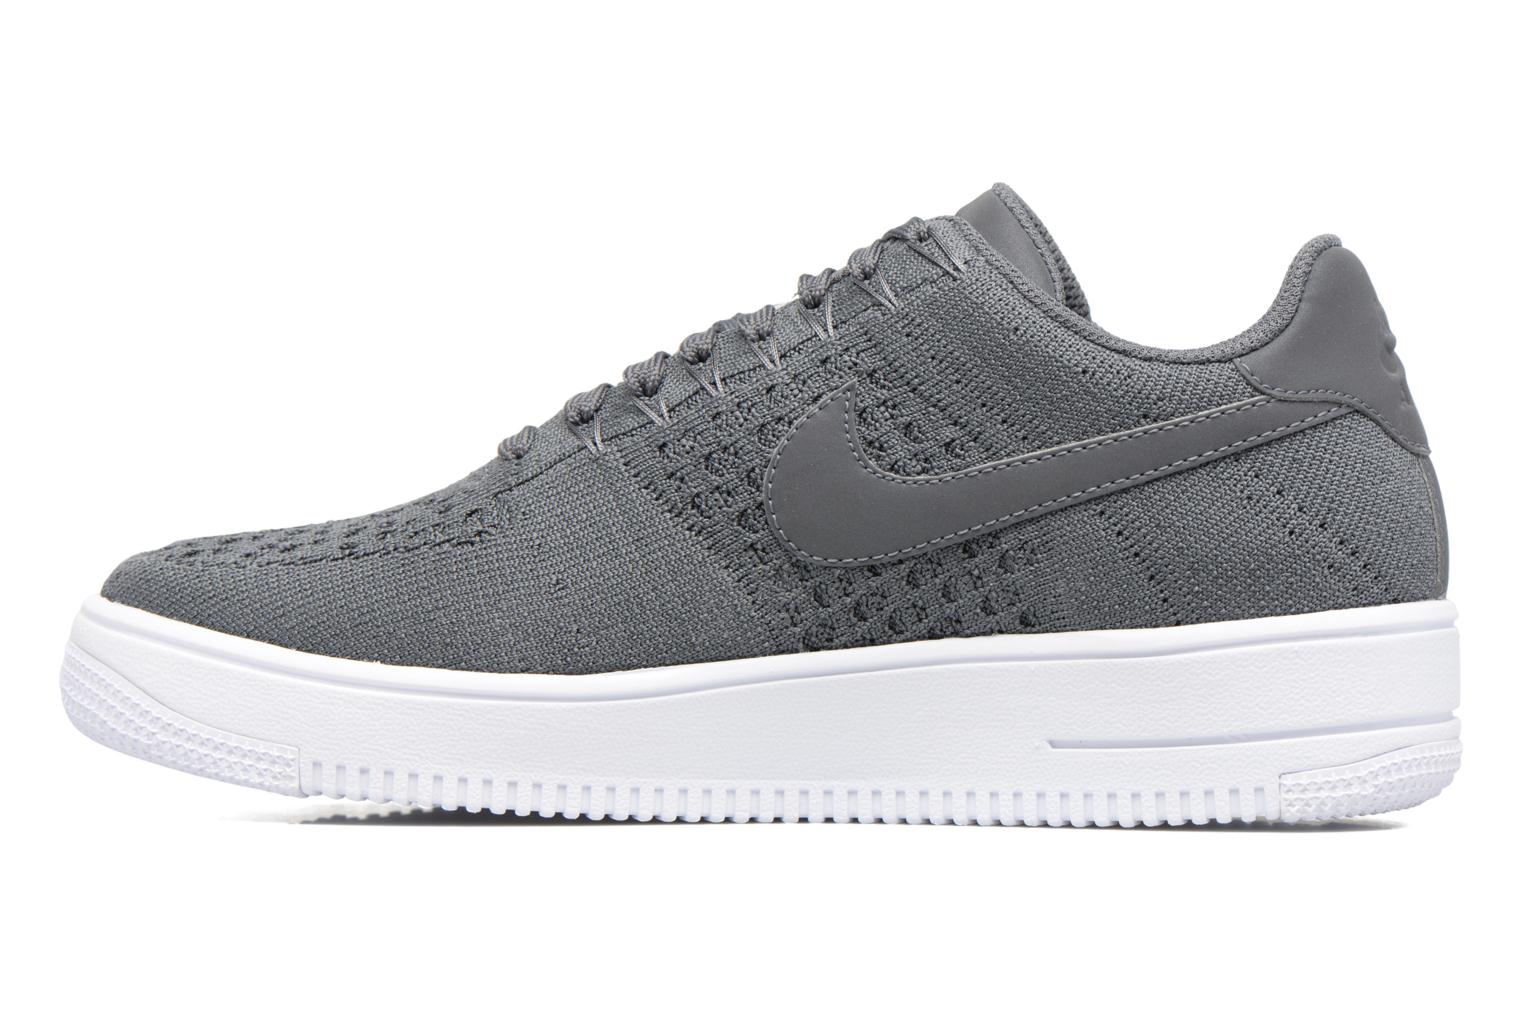 Af1 Ultra Flyknit Low Dark Grey/Dark Grey-White